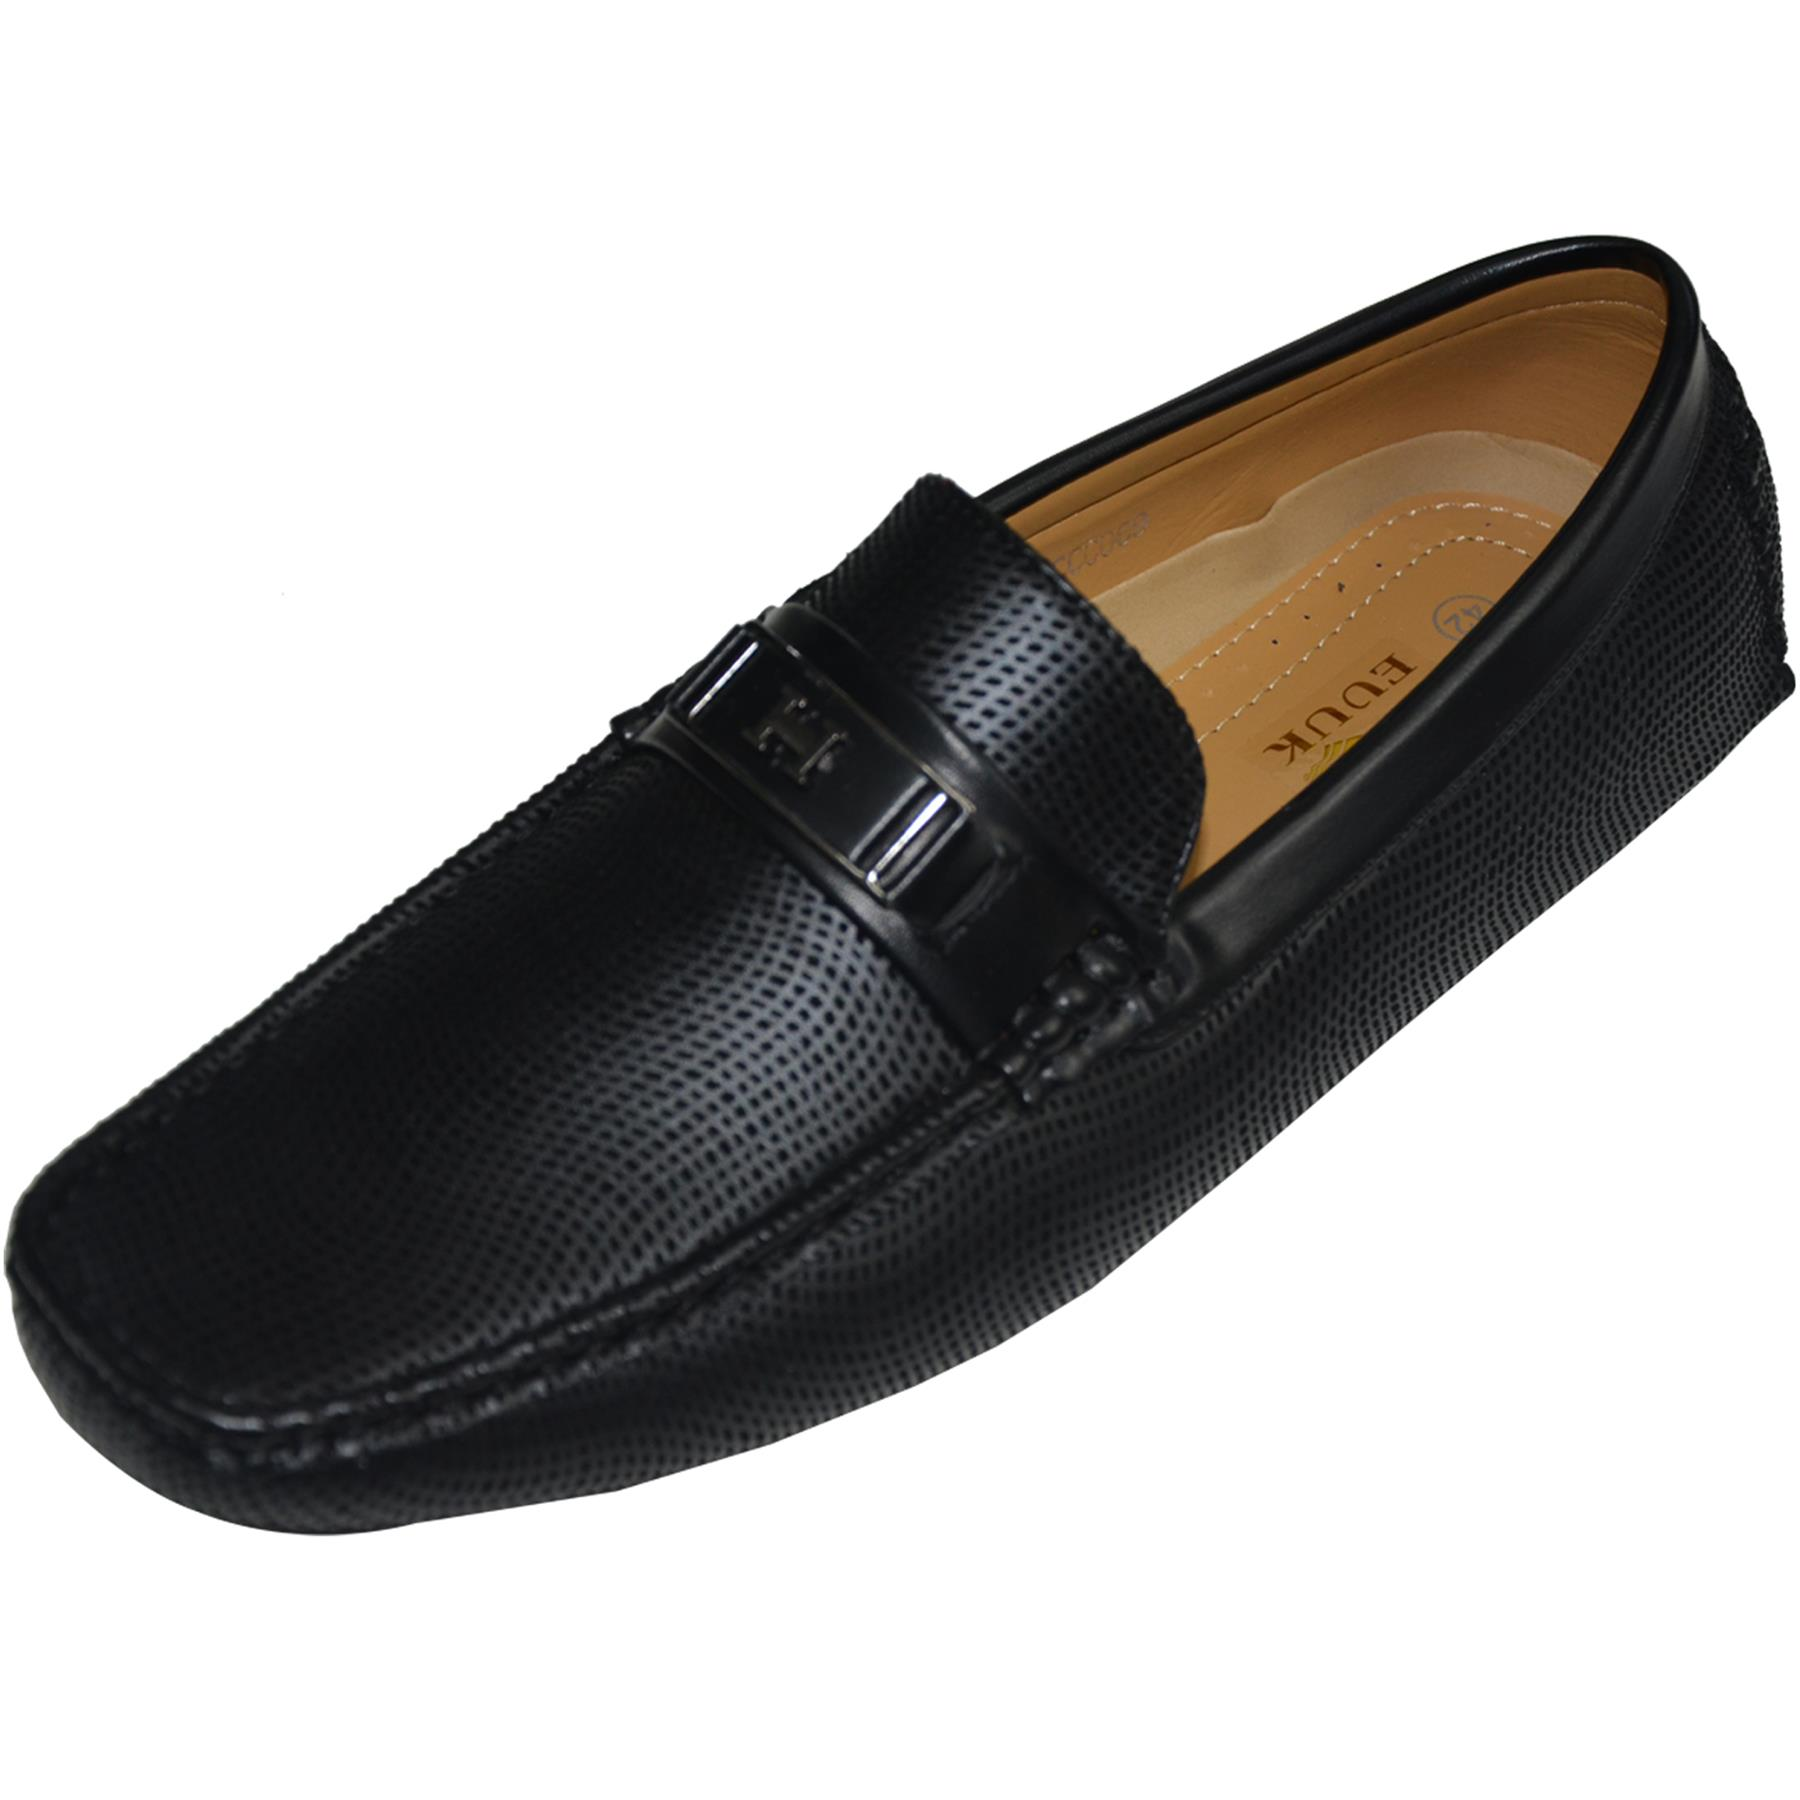 Mens-Slip-Ons-Shoes-Boat-Deck-Driving-Smart-Buckle-Moccasins-Suede-Look-Loafers thumbnail 4